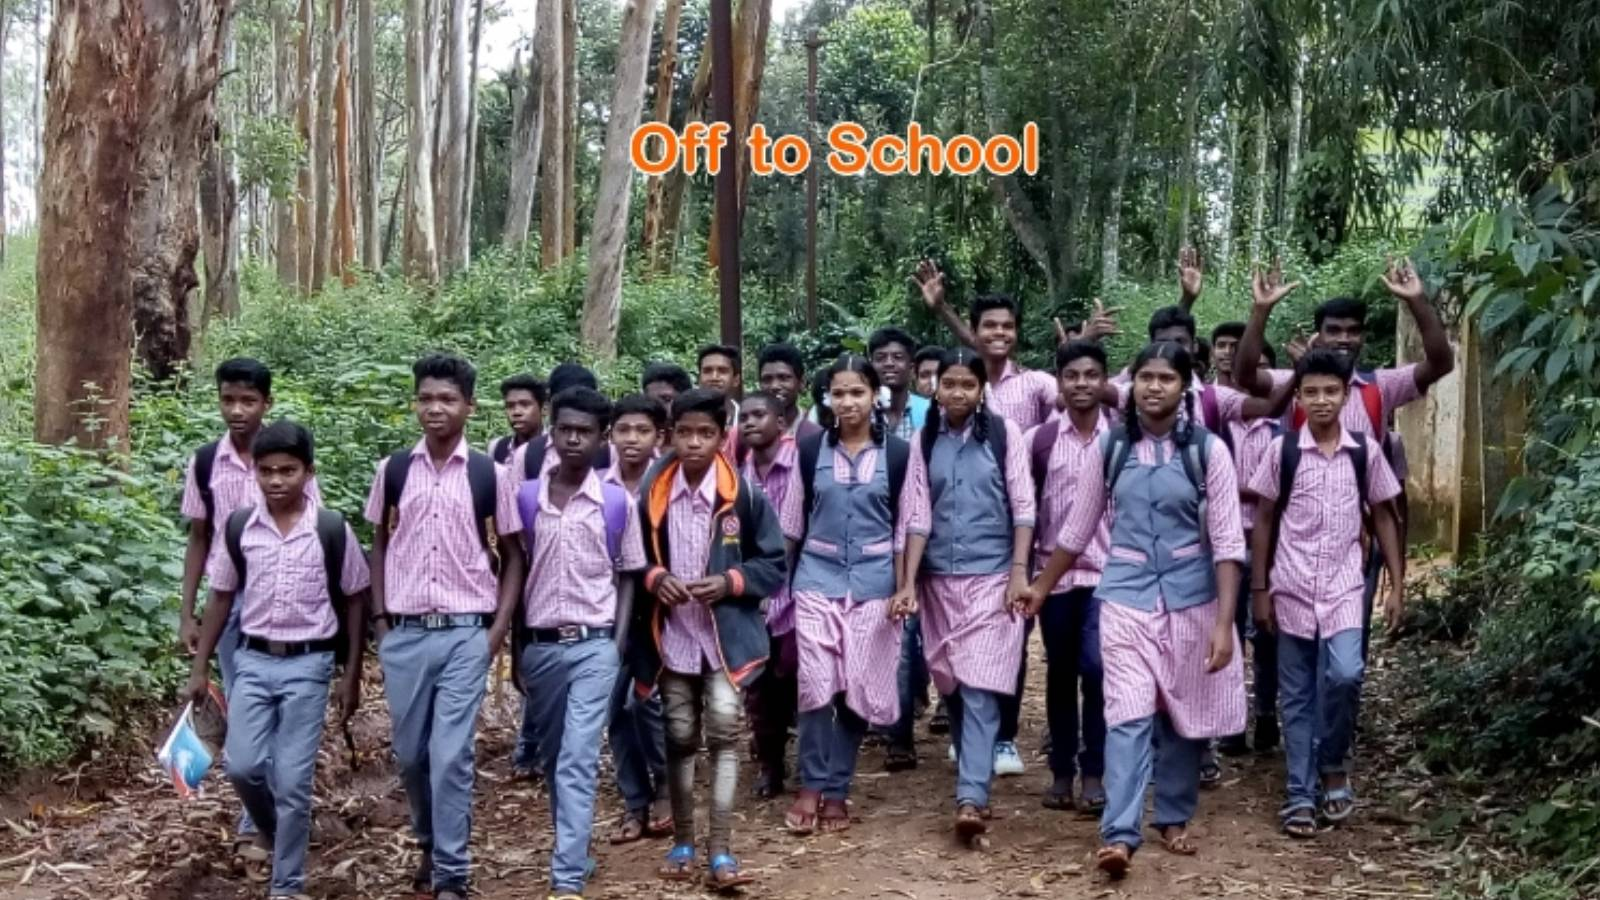 Students off to School